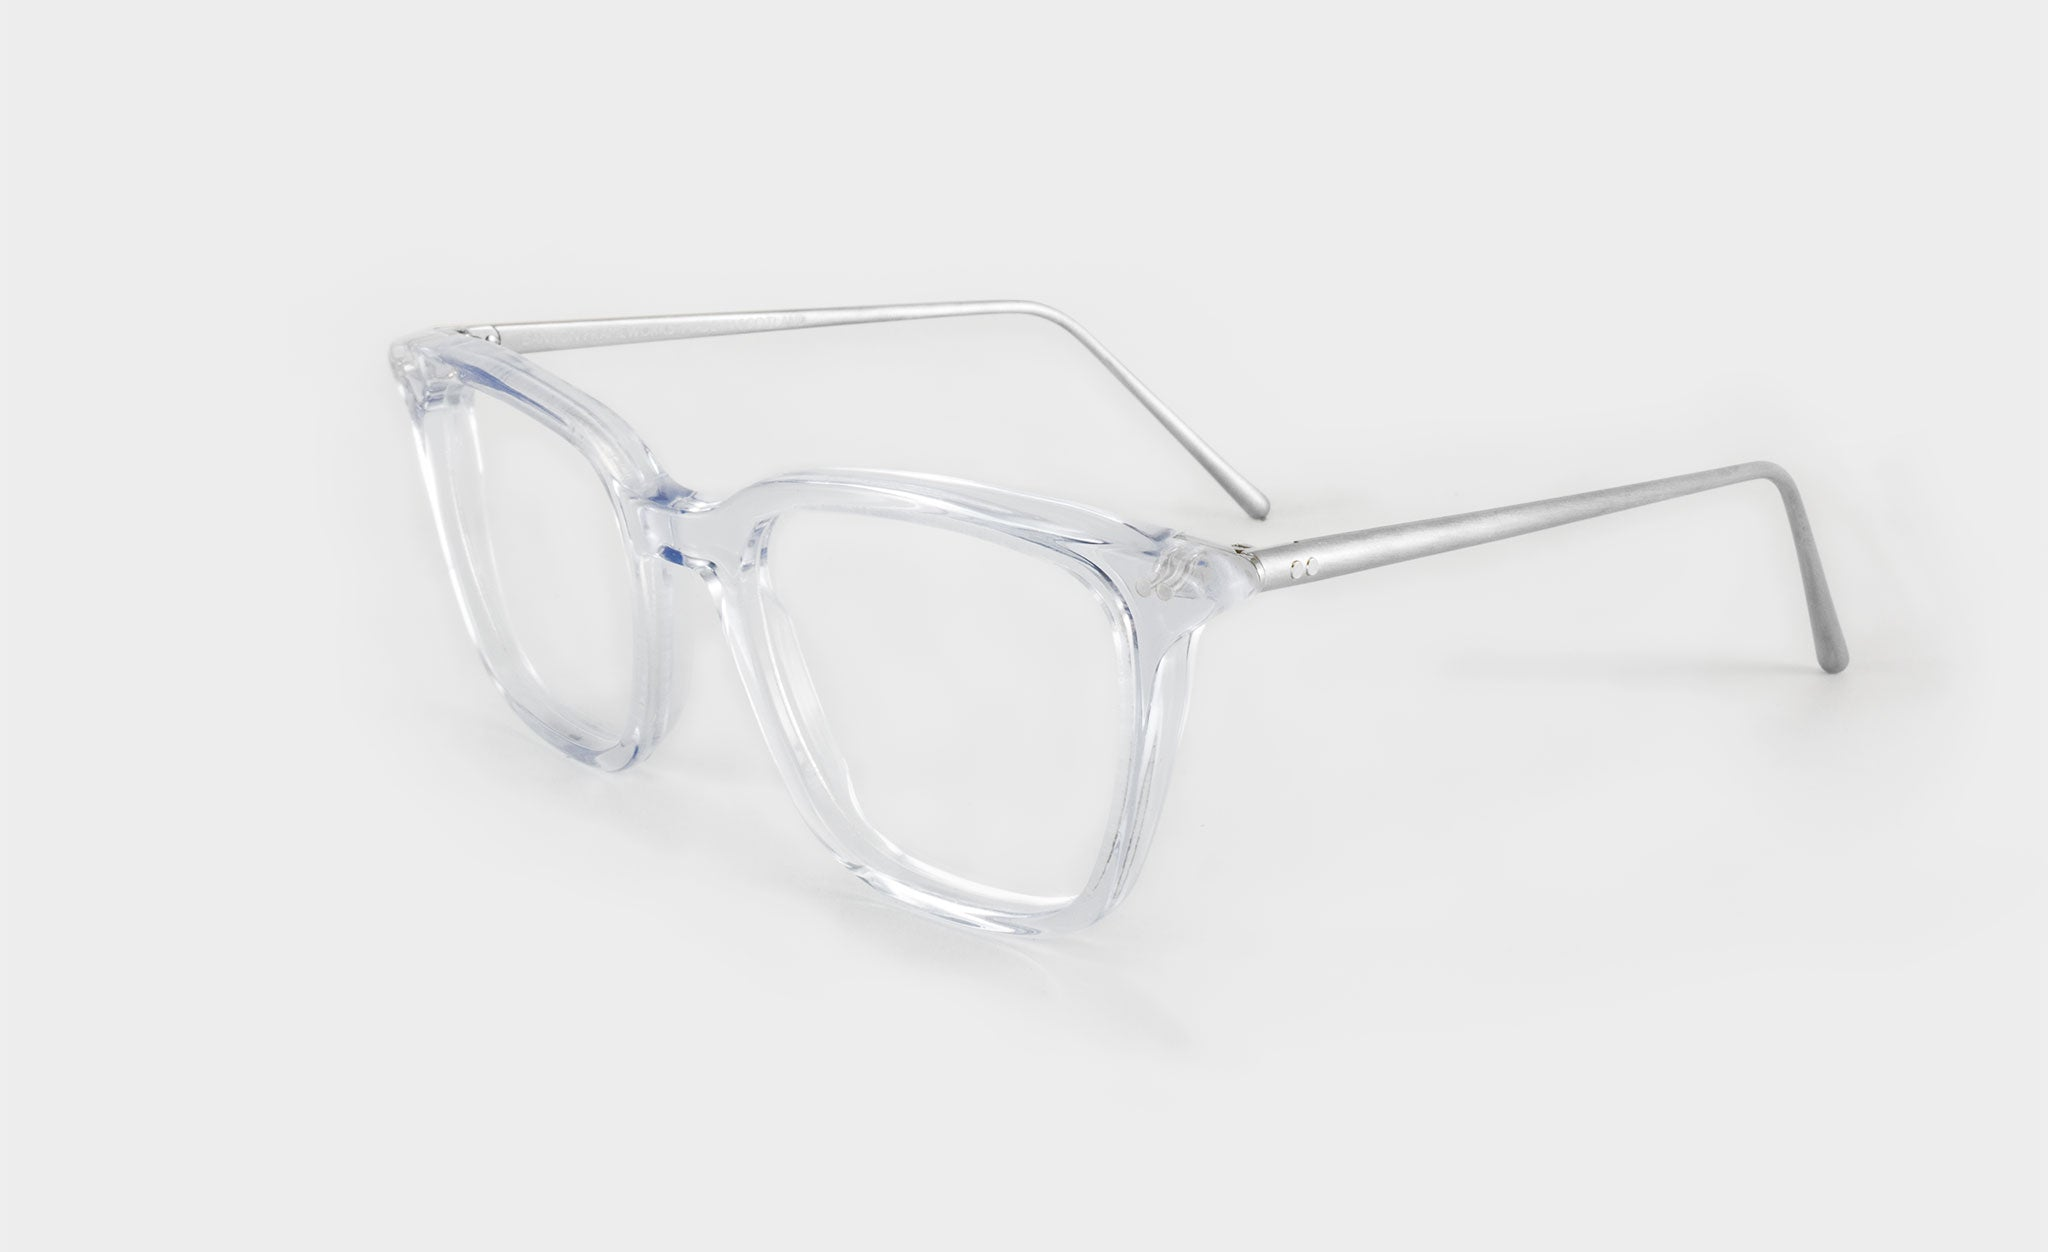 Optical clear frame glasses side view